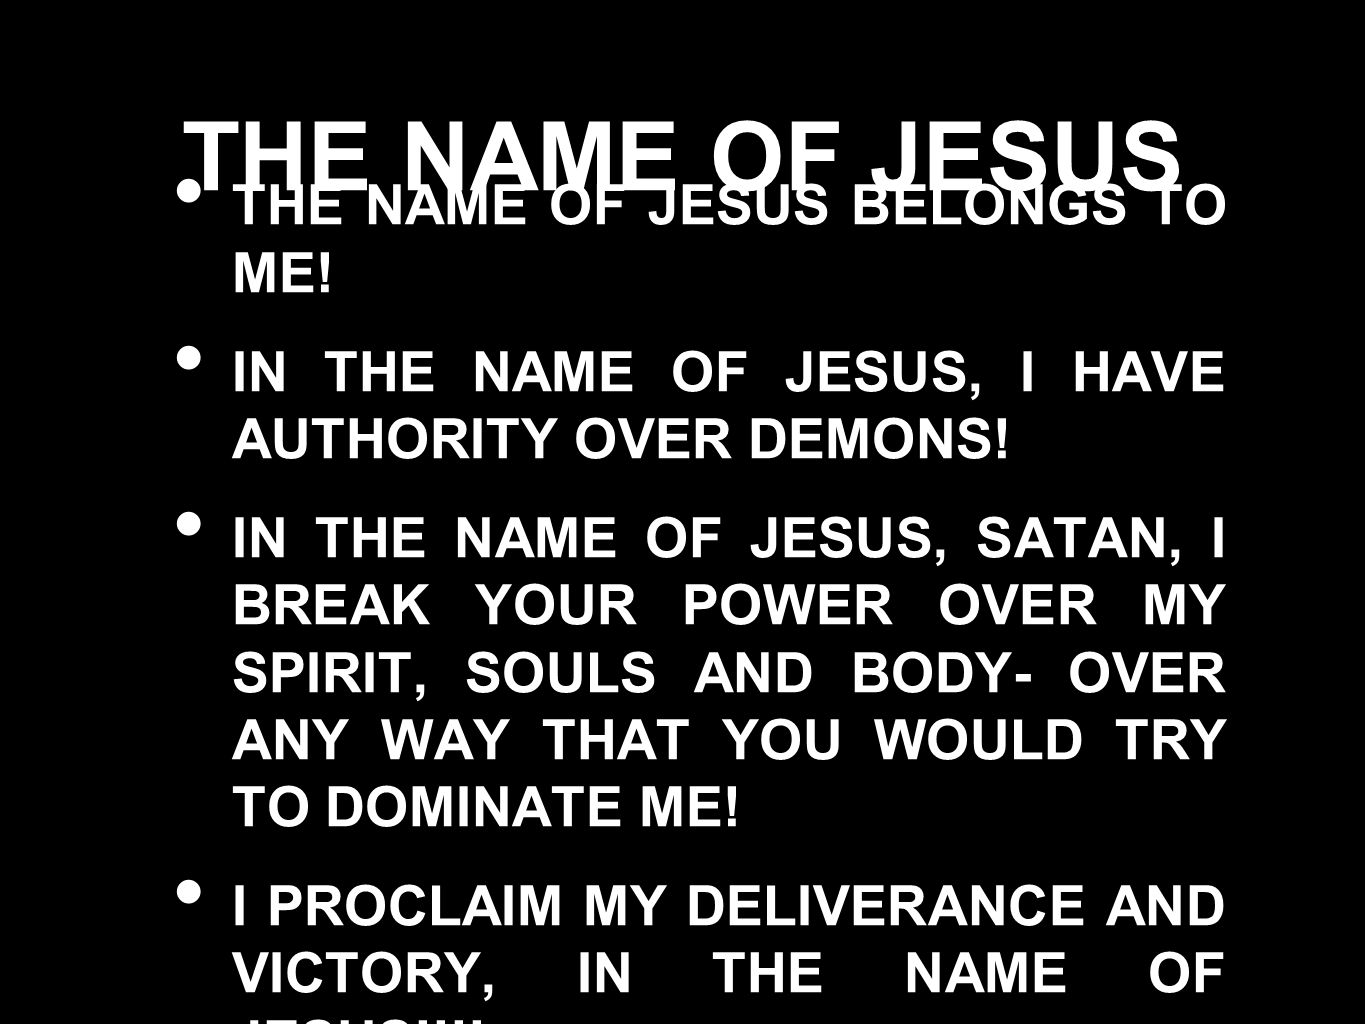 THE NAME OF JESUS THE NAME OF JESUS BELONGS TO ME!